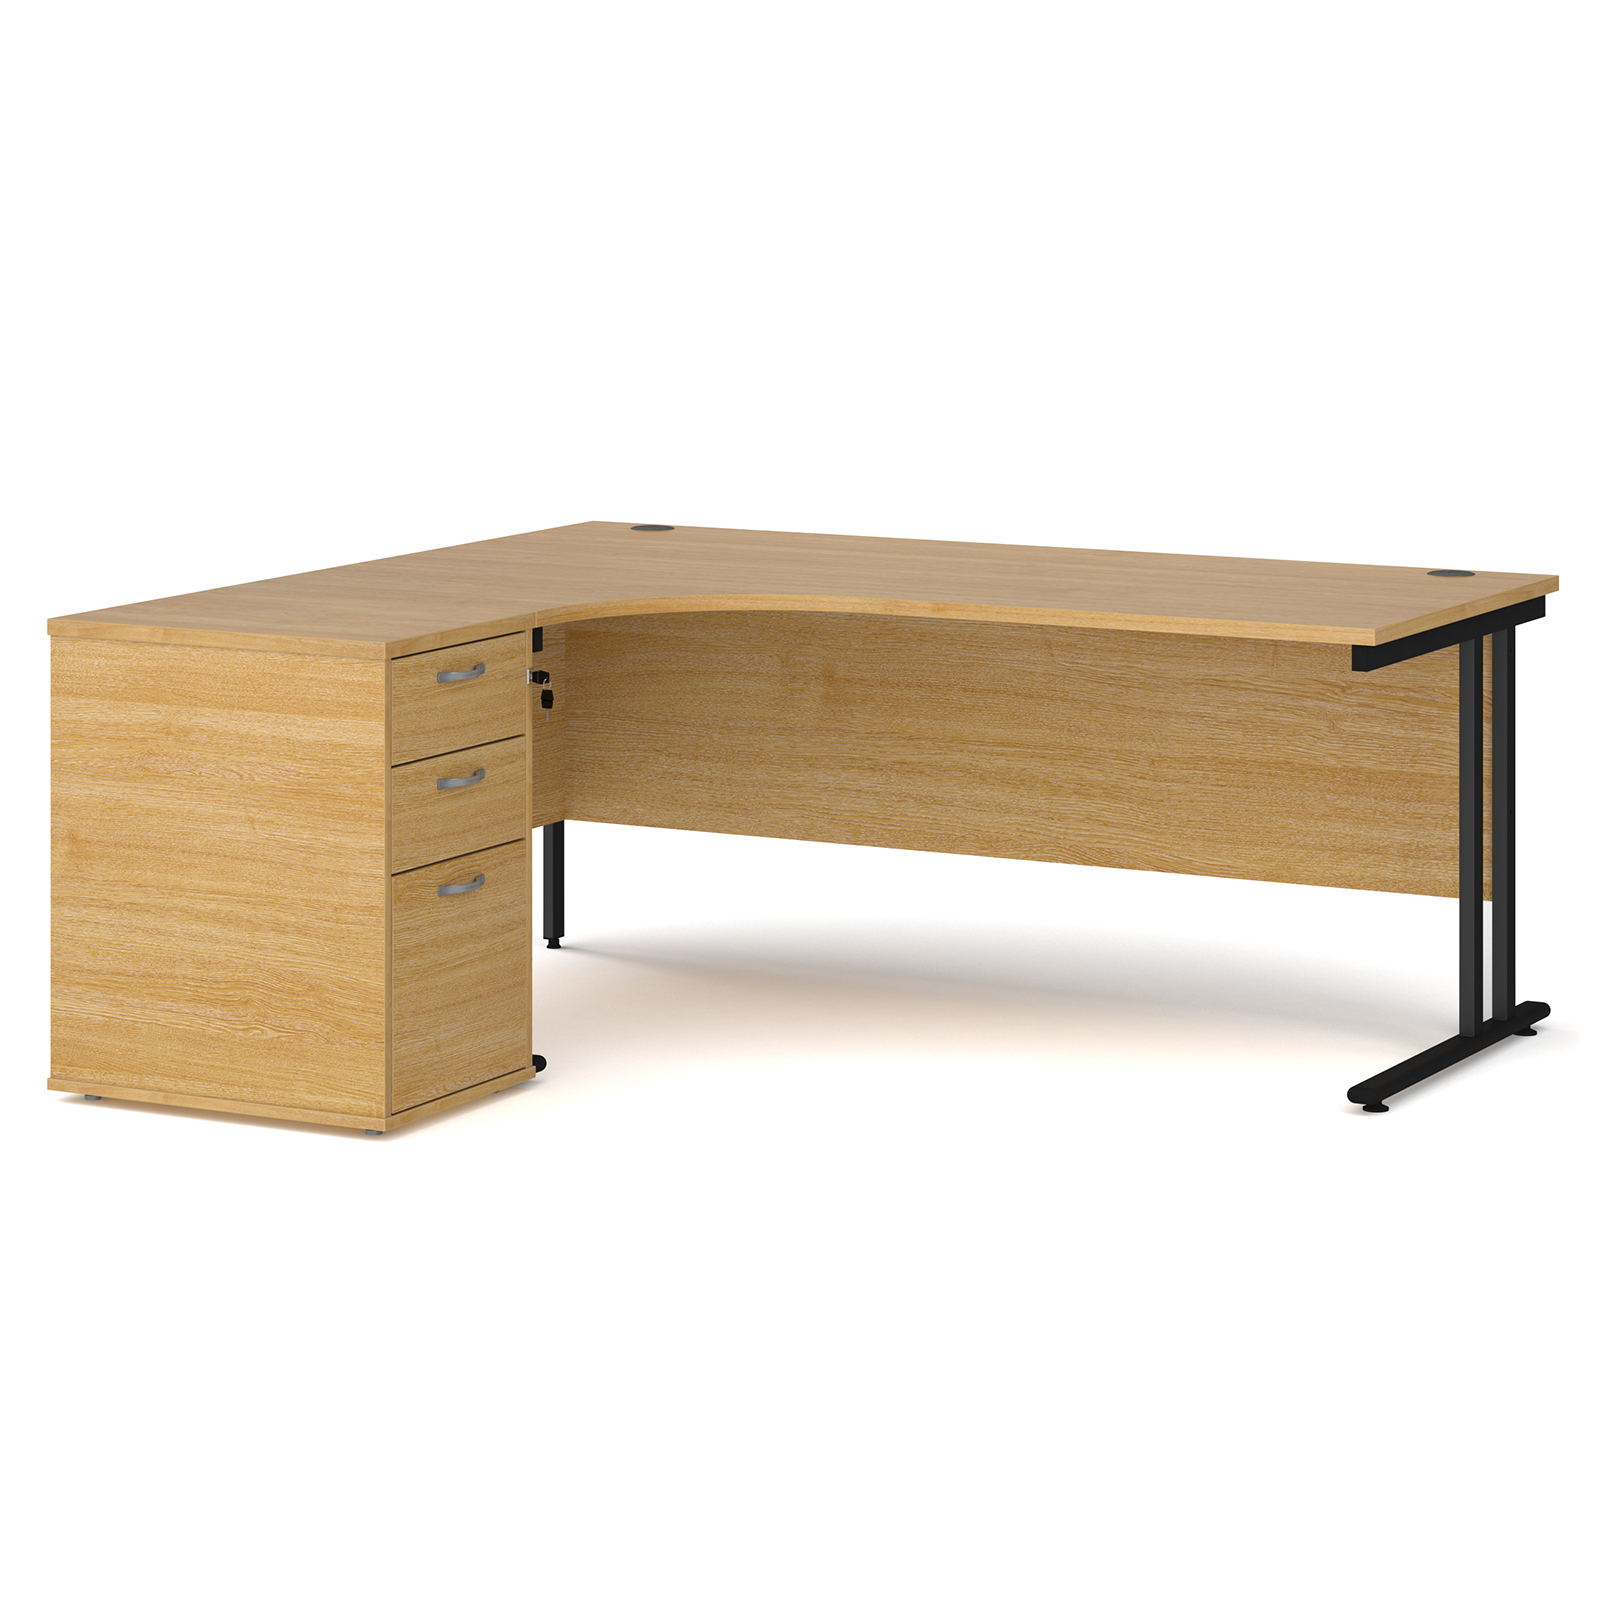 Left Handed Maestro 25 left hand ergonomic desk 1800mm with black cantilever frame and desk high pedestal - oak